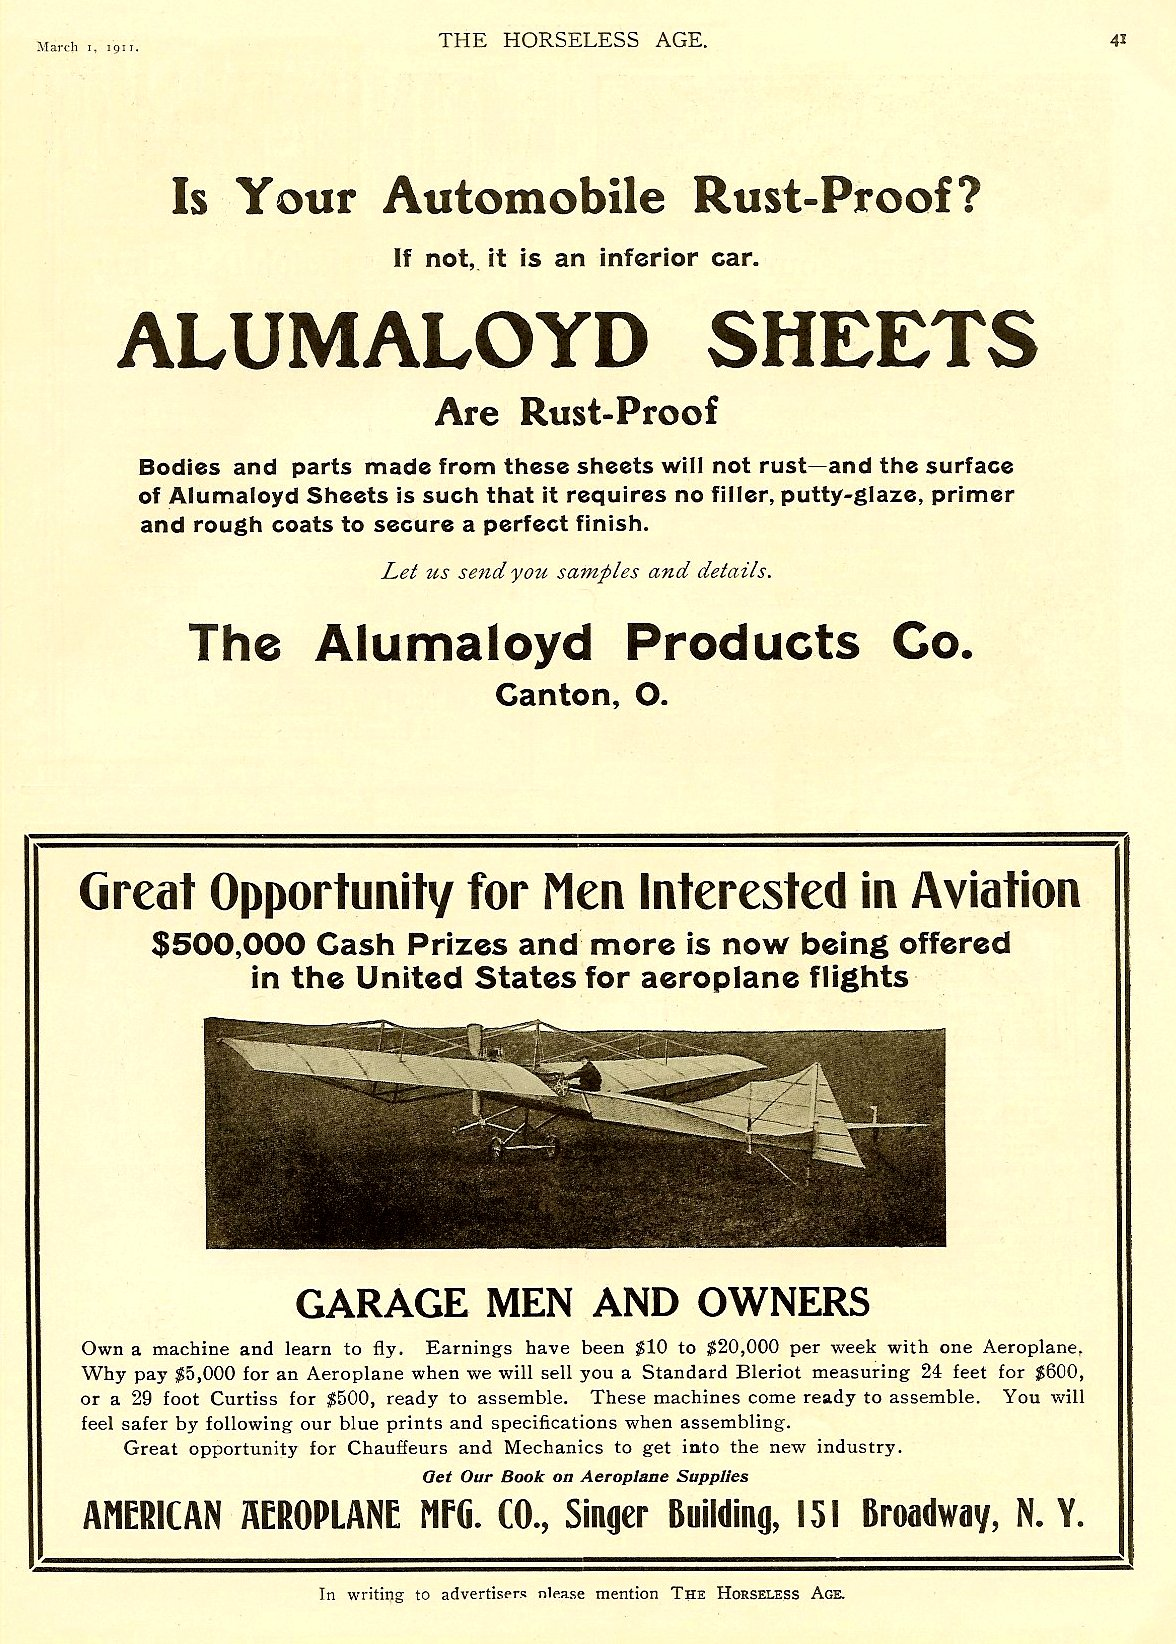 """1911 3 1 March 1 """"Men Interested in Aviation"""" THE HORSELESS AGE March 1, 1911 Vol 27 No 9 9″x12″ page 41"""